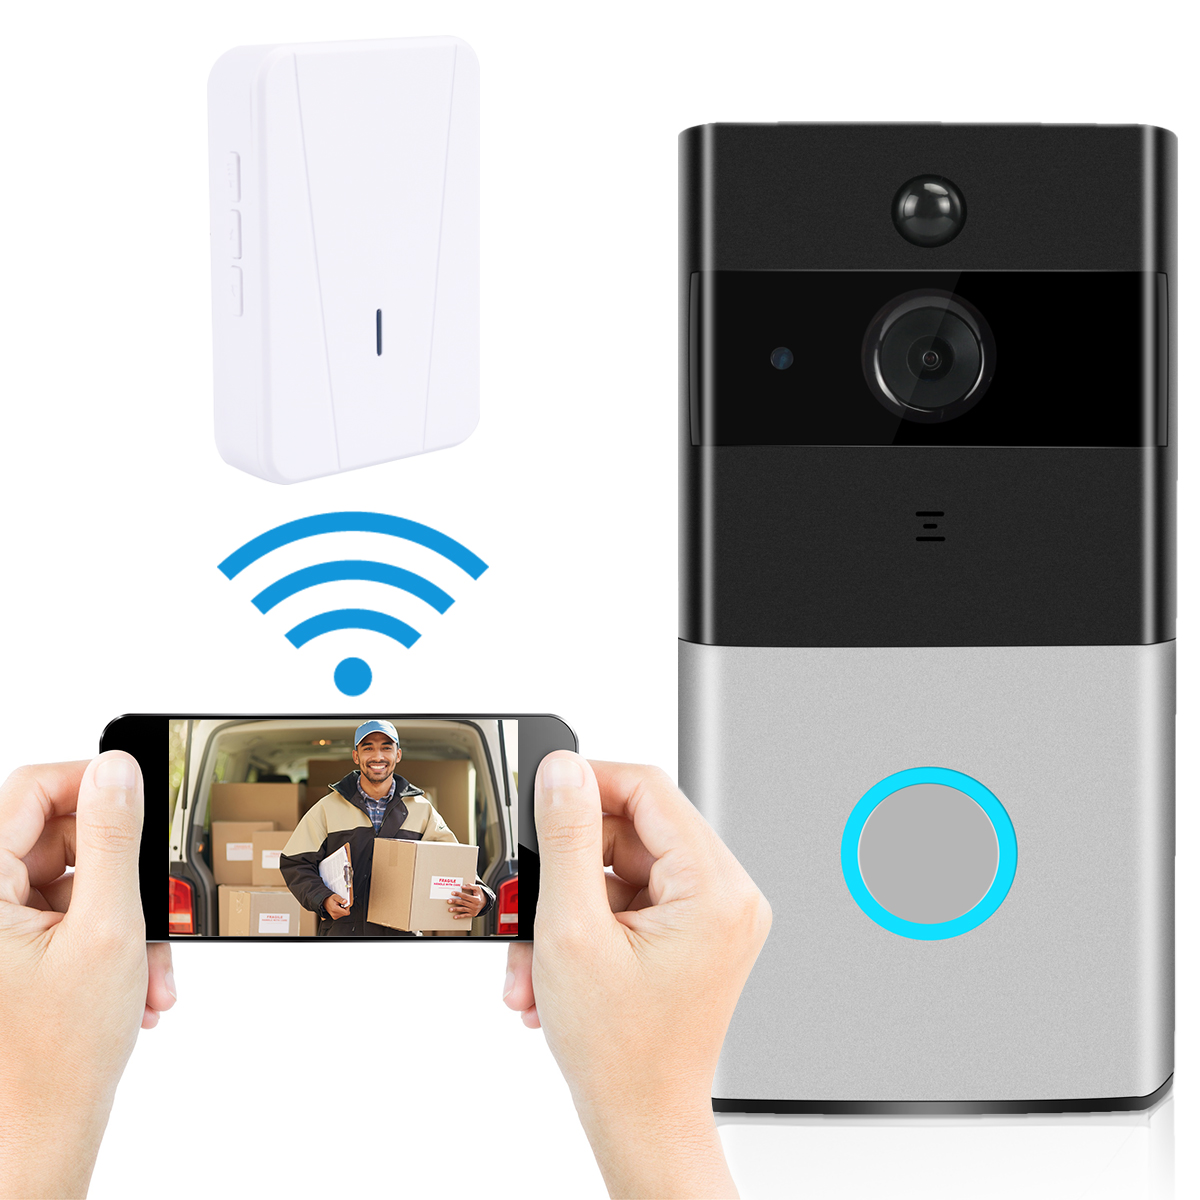 Home Intelligent WIFI Network Wireless Video Night Vision Motion Detection Phone Intercom Doorbell US